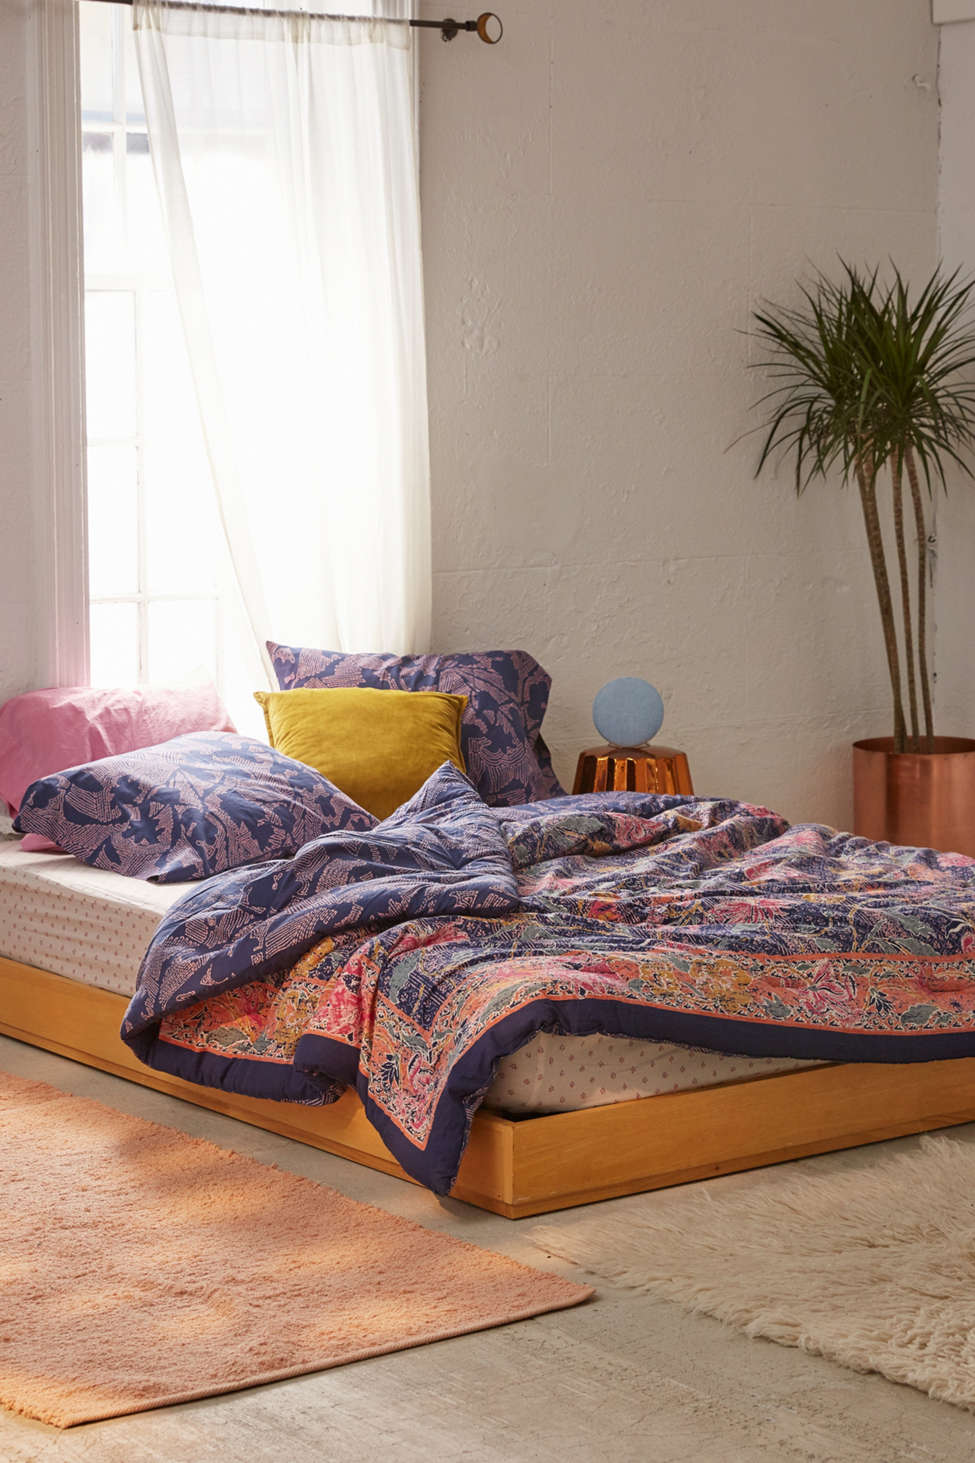 Slide View: 2: Taliah Mixed Floral Reversible Comforter Snooze Set